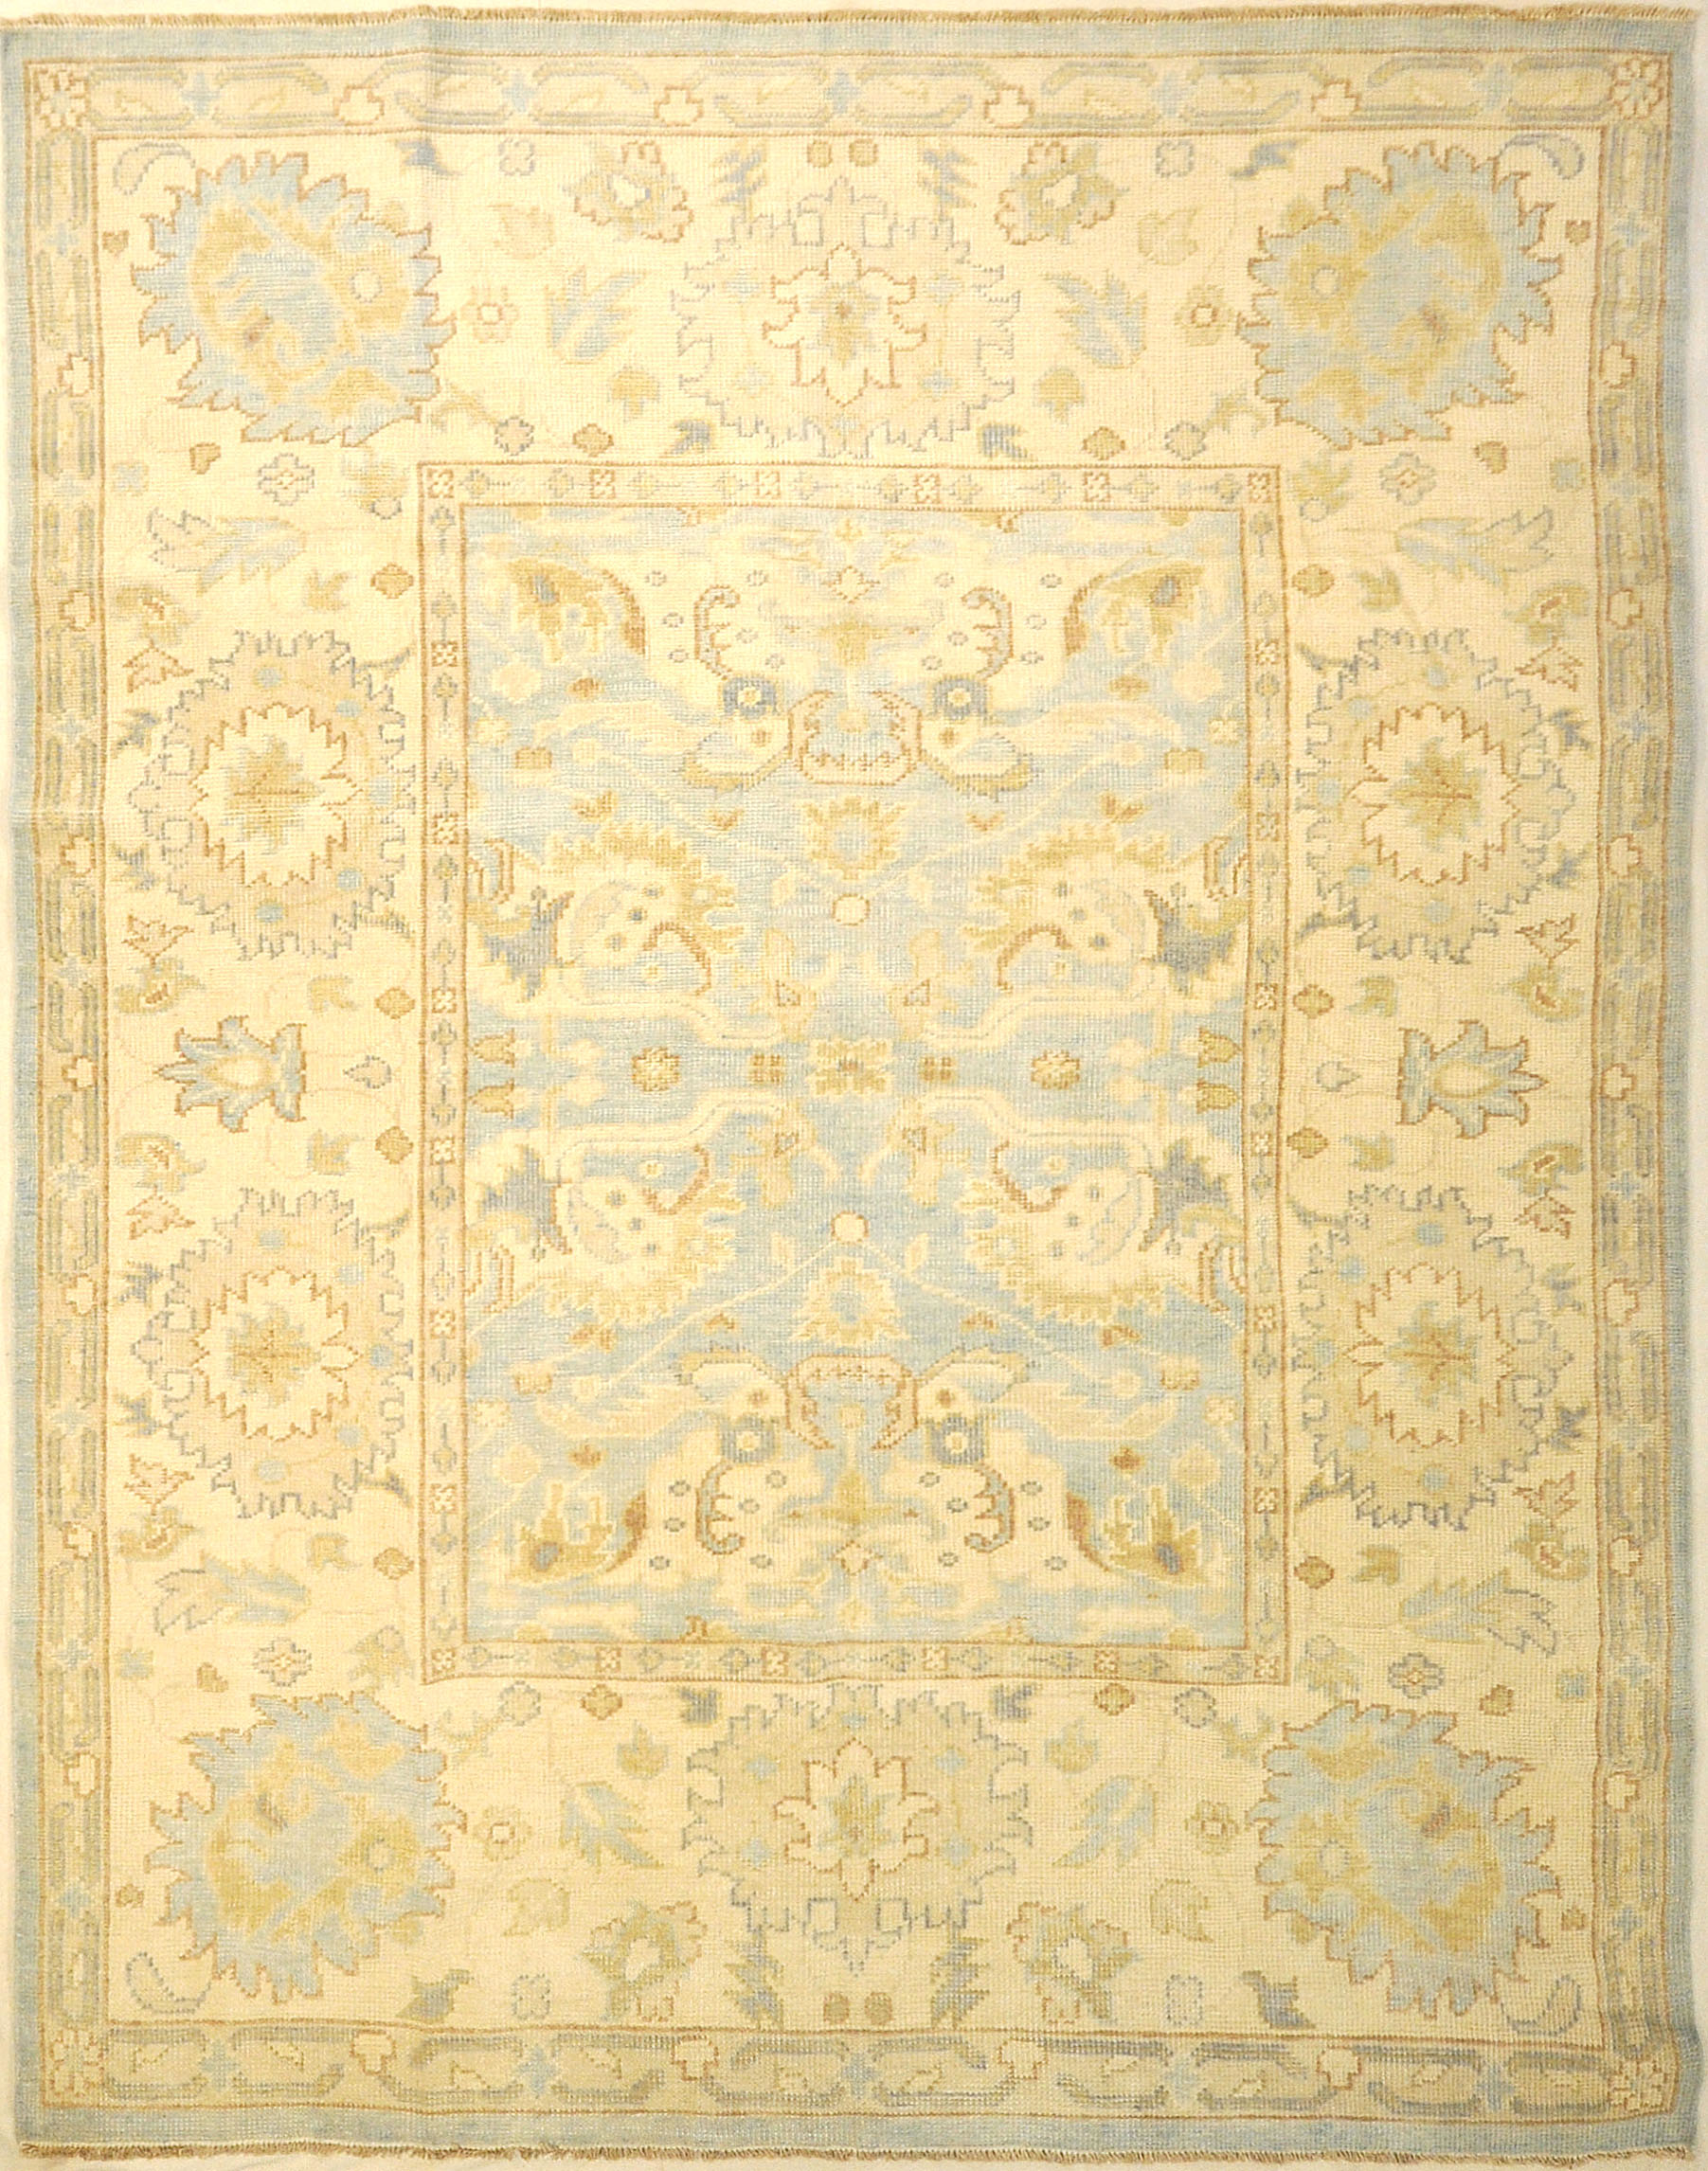 Montecito Oushak Rug 30312. A piece of genuine authentic woven art woven by Ziegler and Company and sold by Santa Barbara Design Center, Rugs and More.